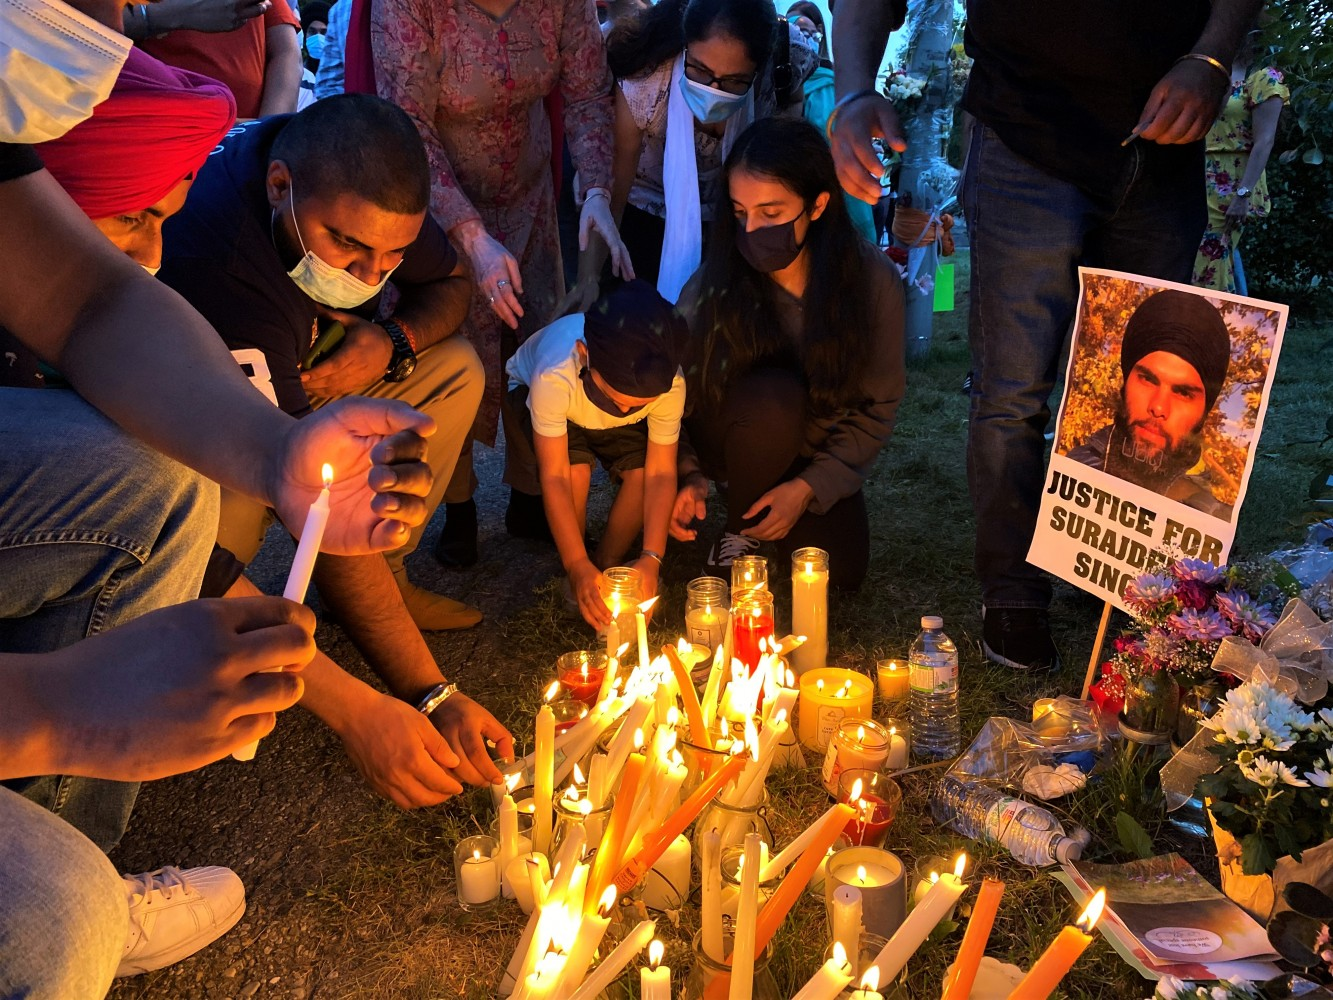 In Brampton a community mourns another senseless killing